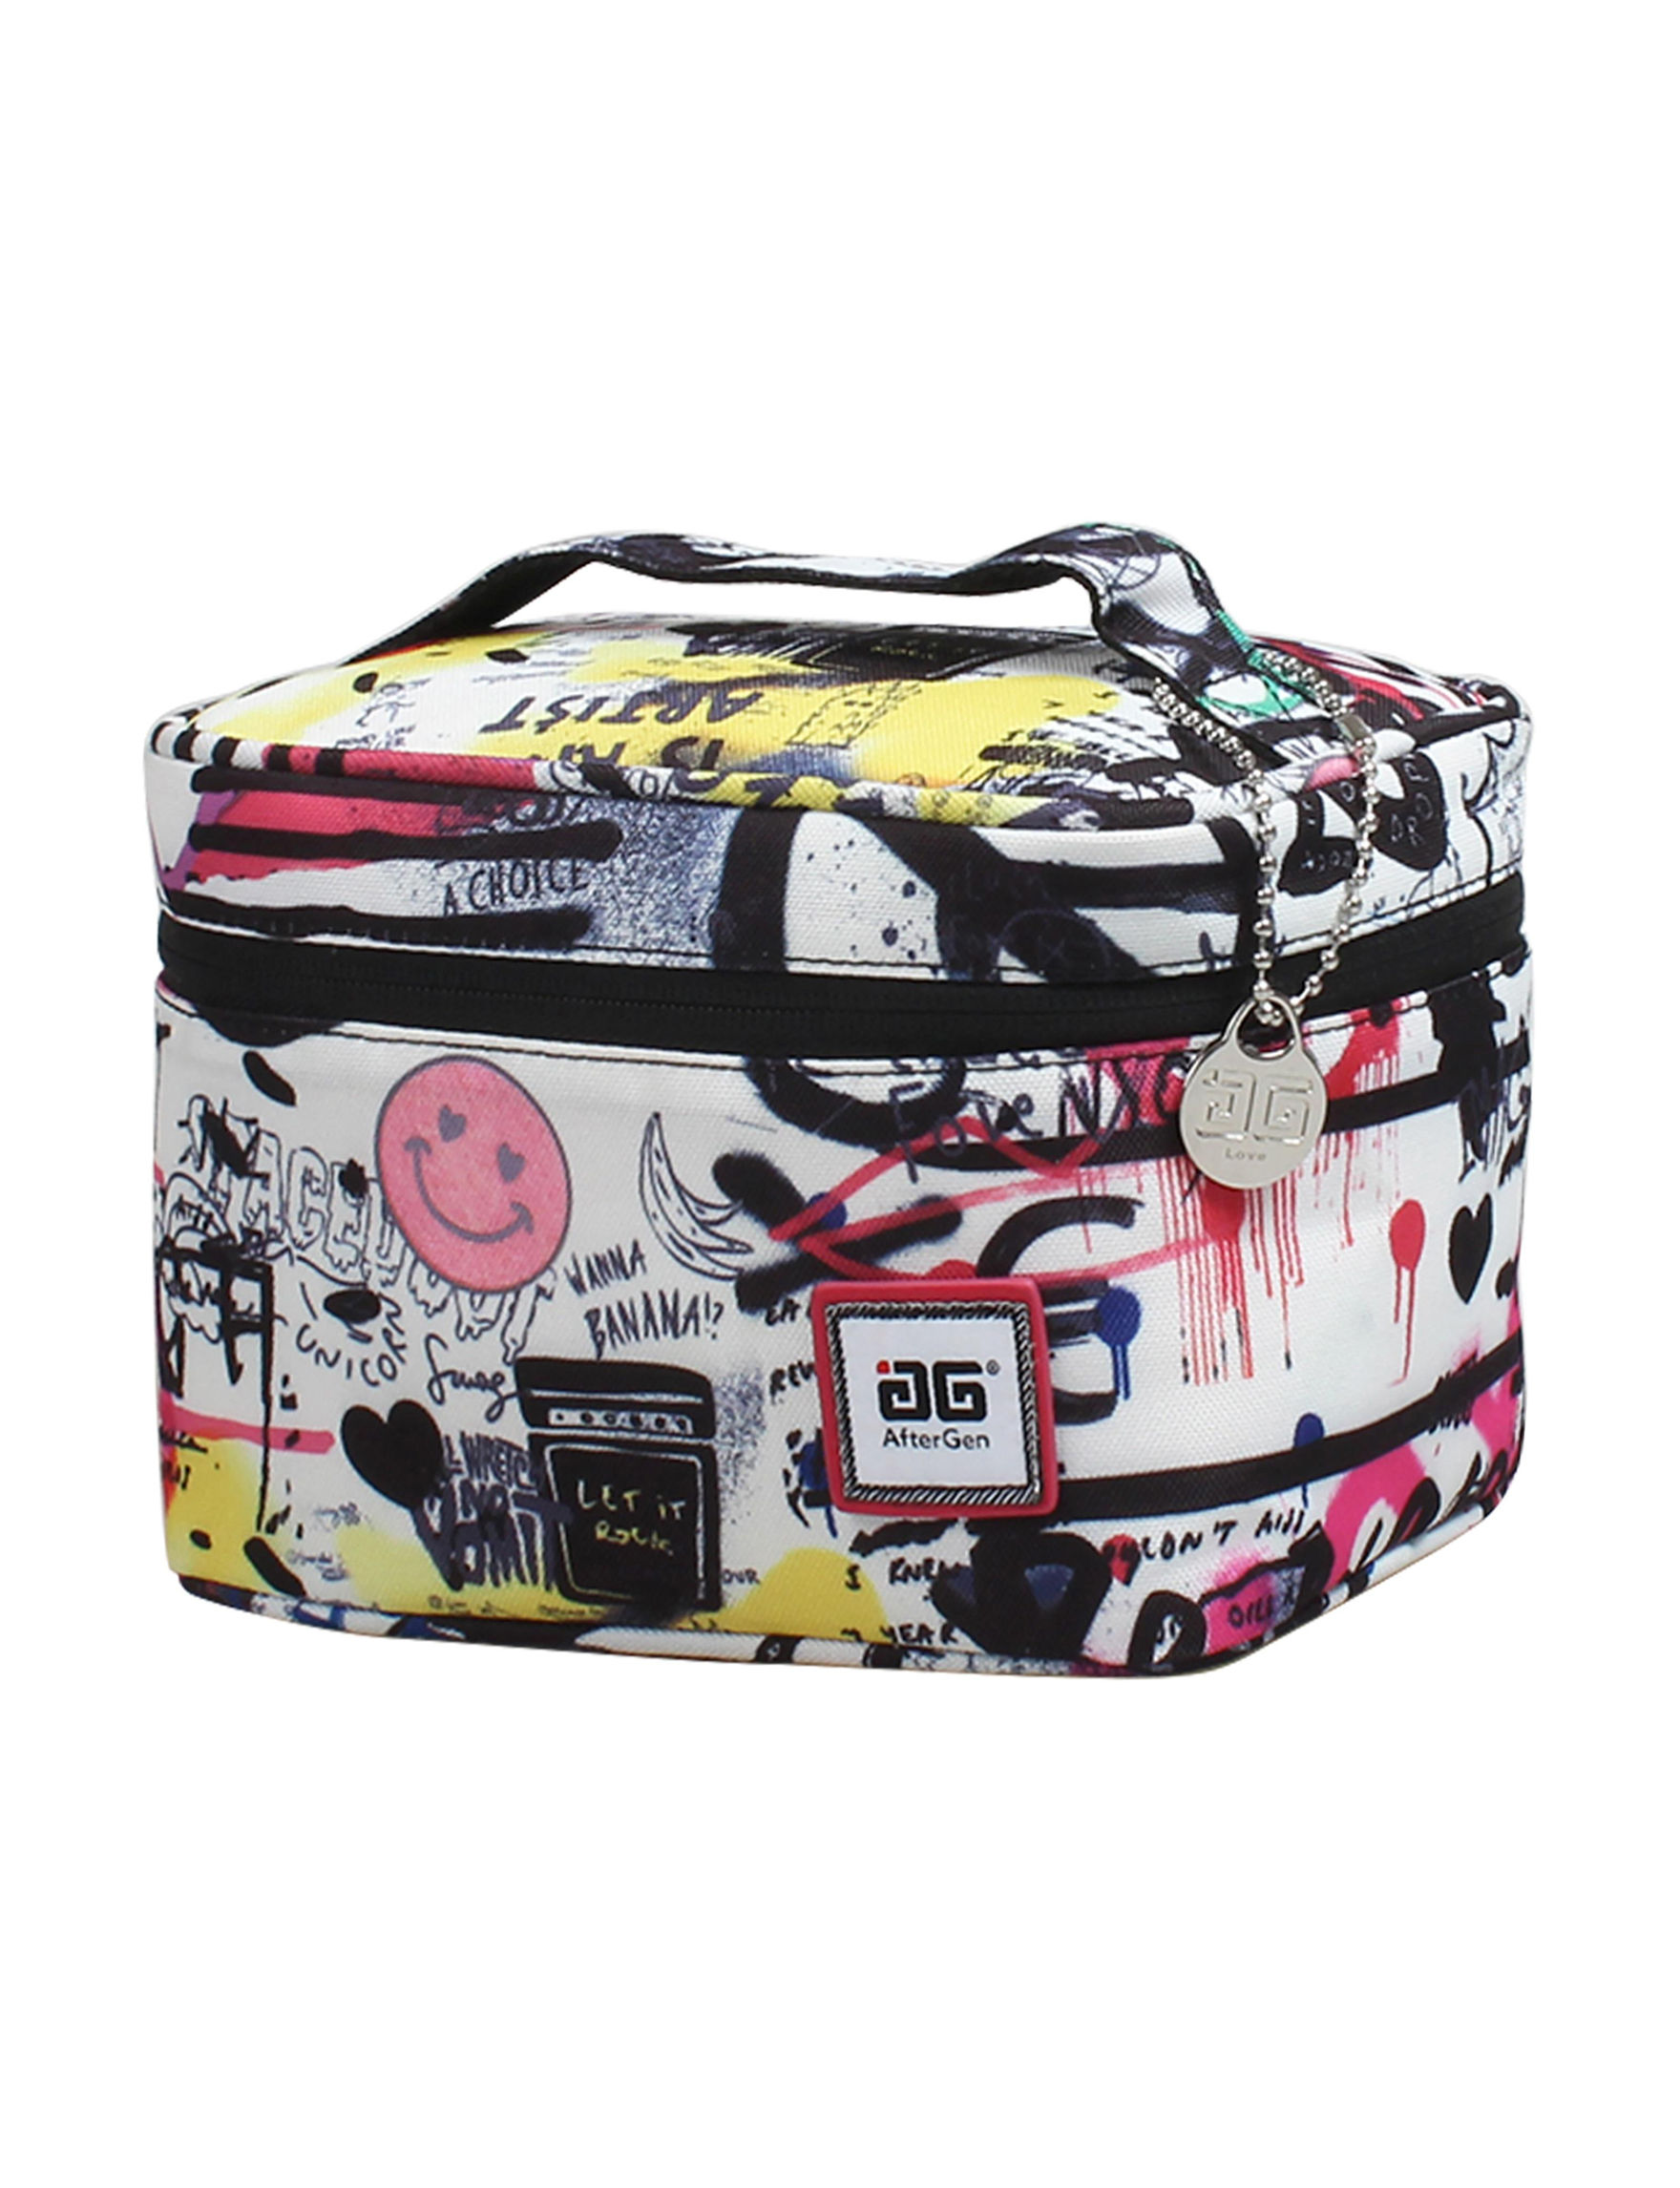 Aftergen Pink / White / Black Lunch Boxes & Bags Travel Accessories